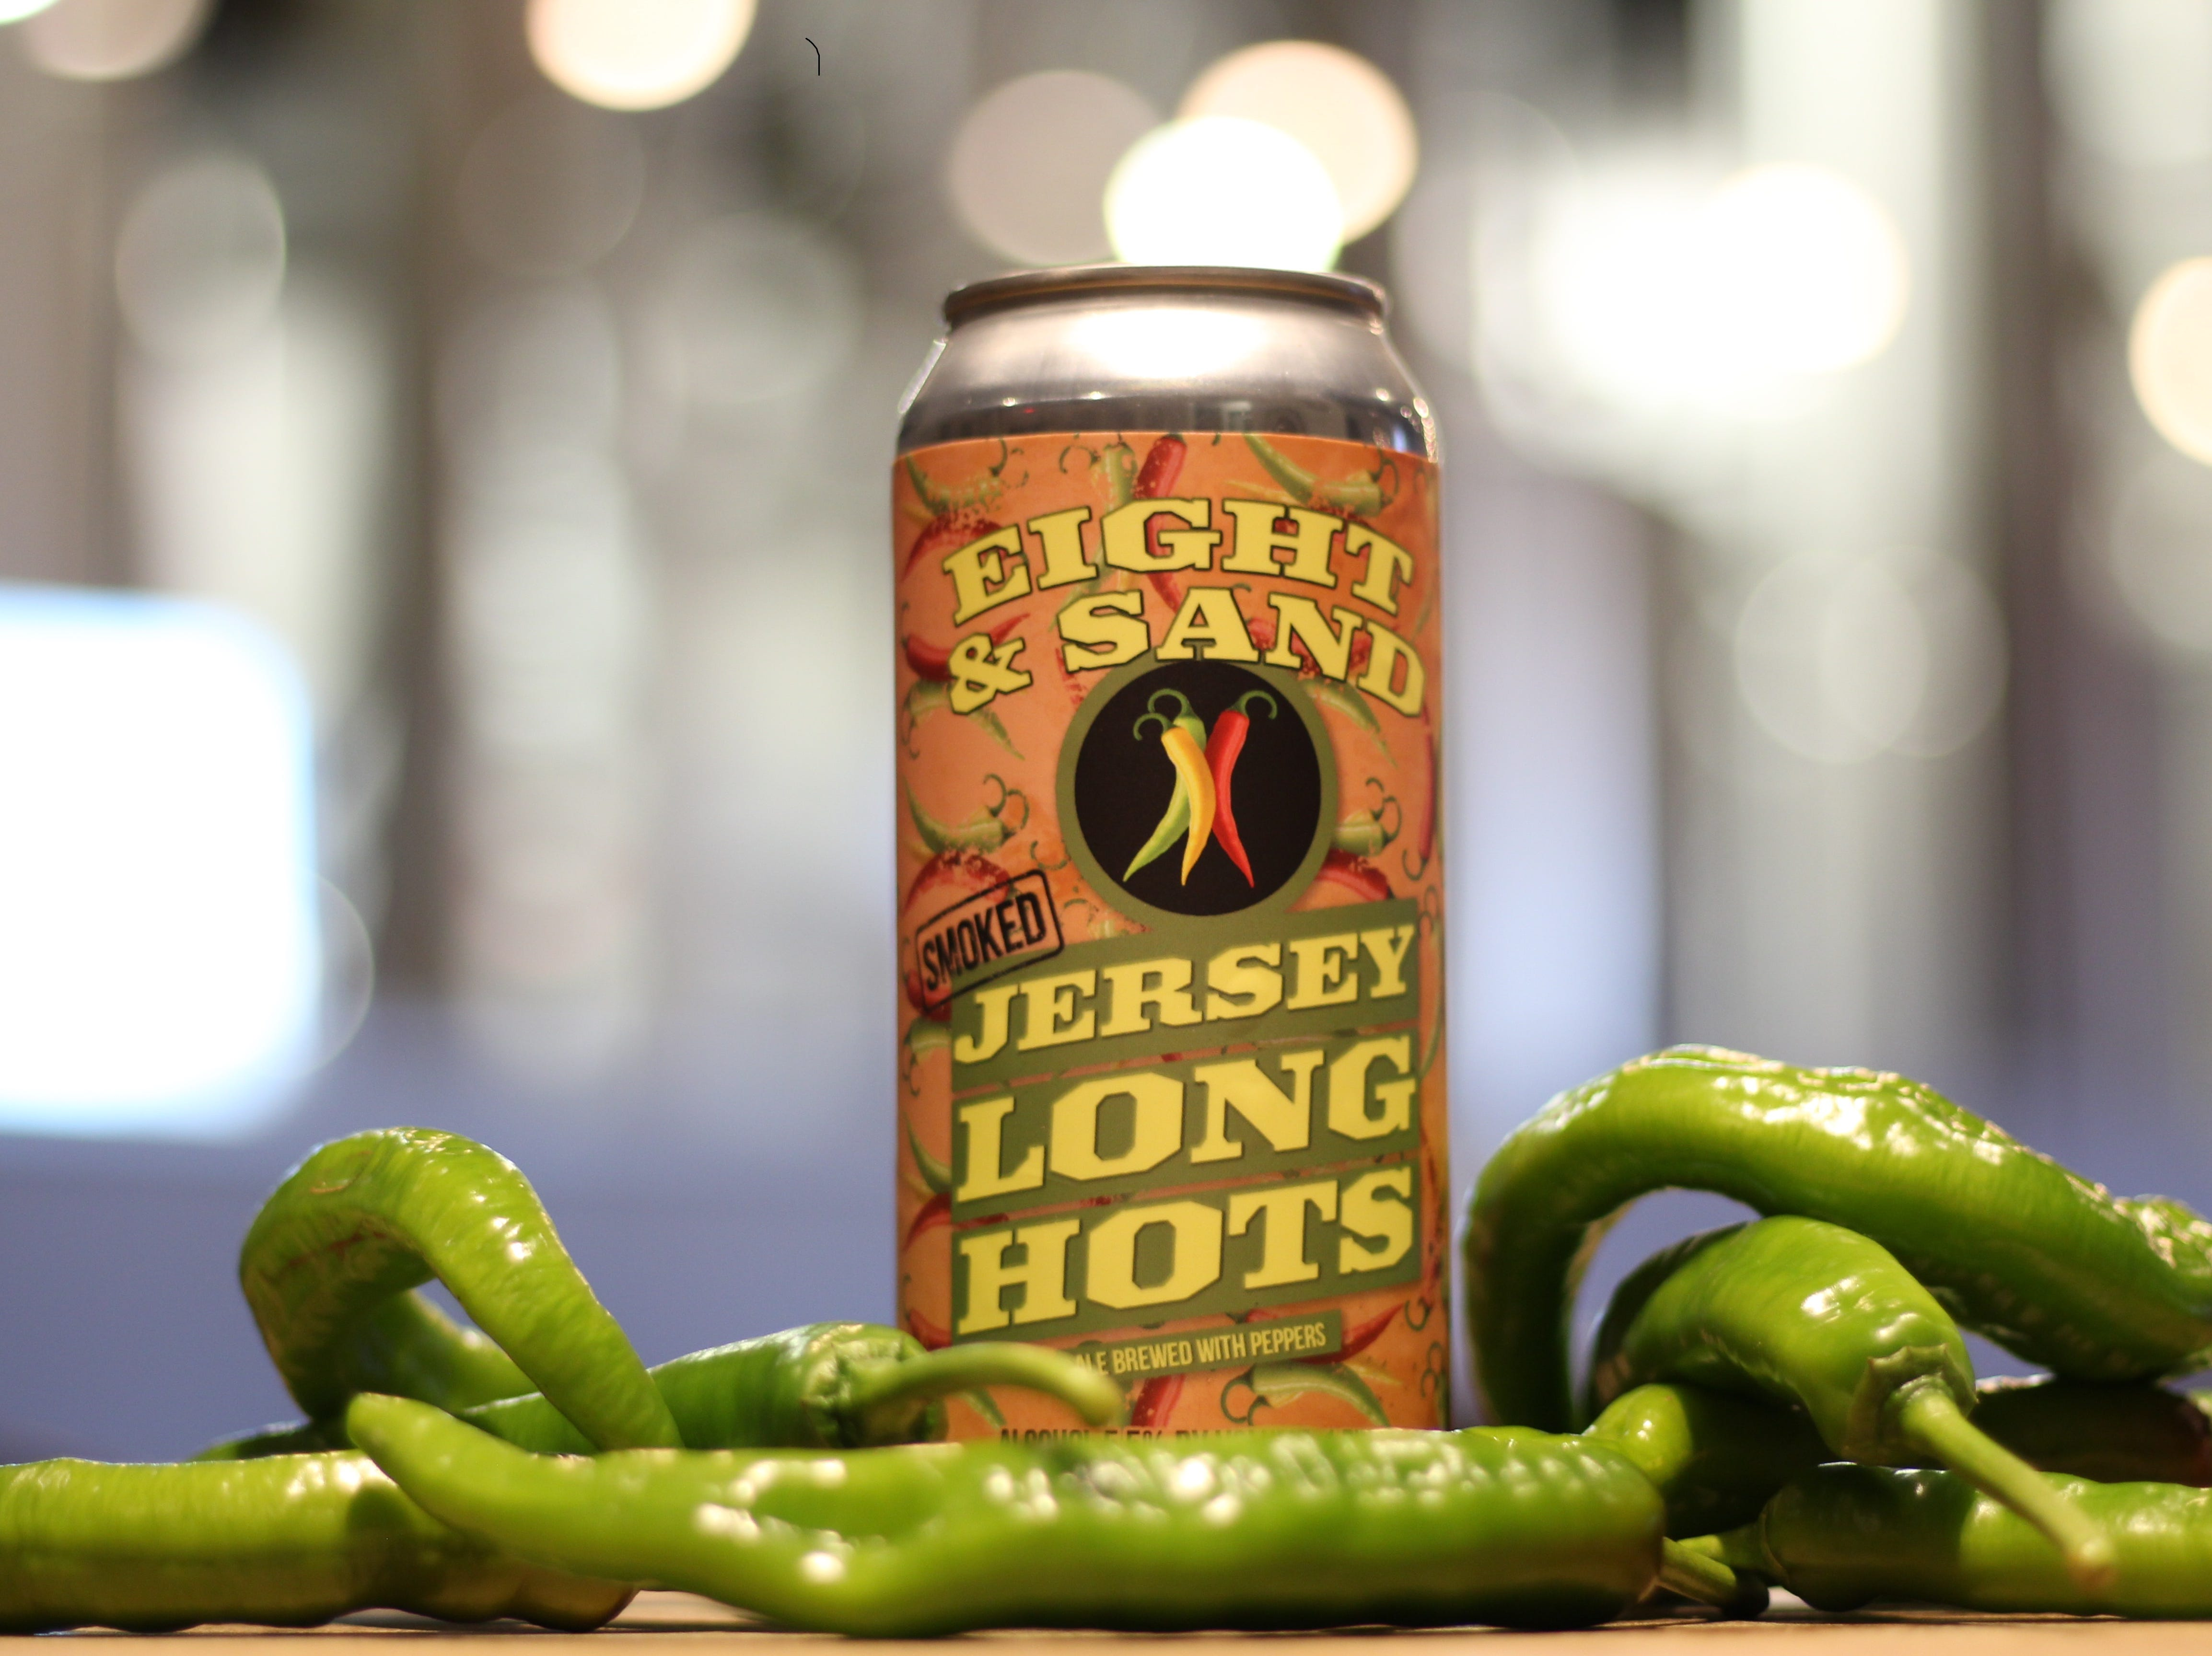 New Jersey brewery: 'Kielbasa' beer? Eight & Sand Brewing's got it to go